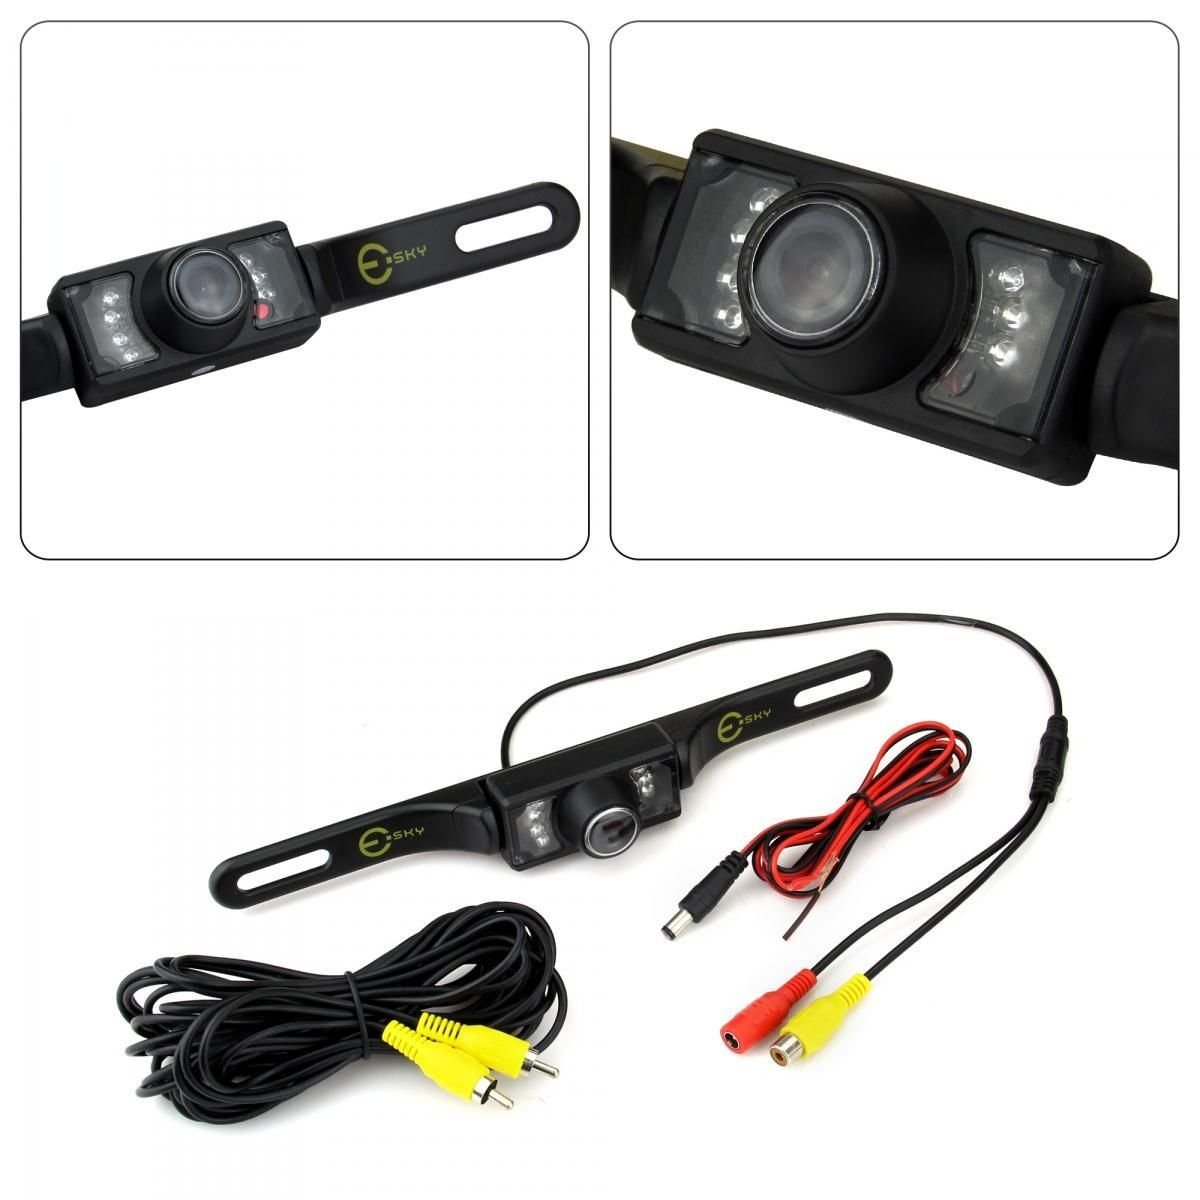 Universal CMOS Waterproof 7 LED Car Rear View Reverse Backup Parking Camera